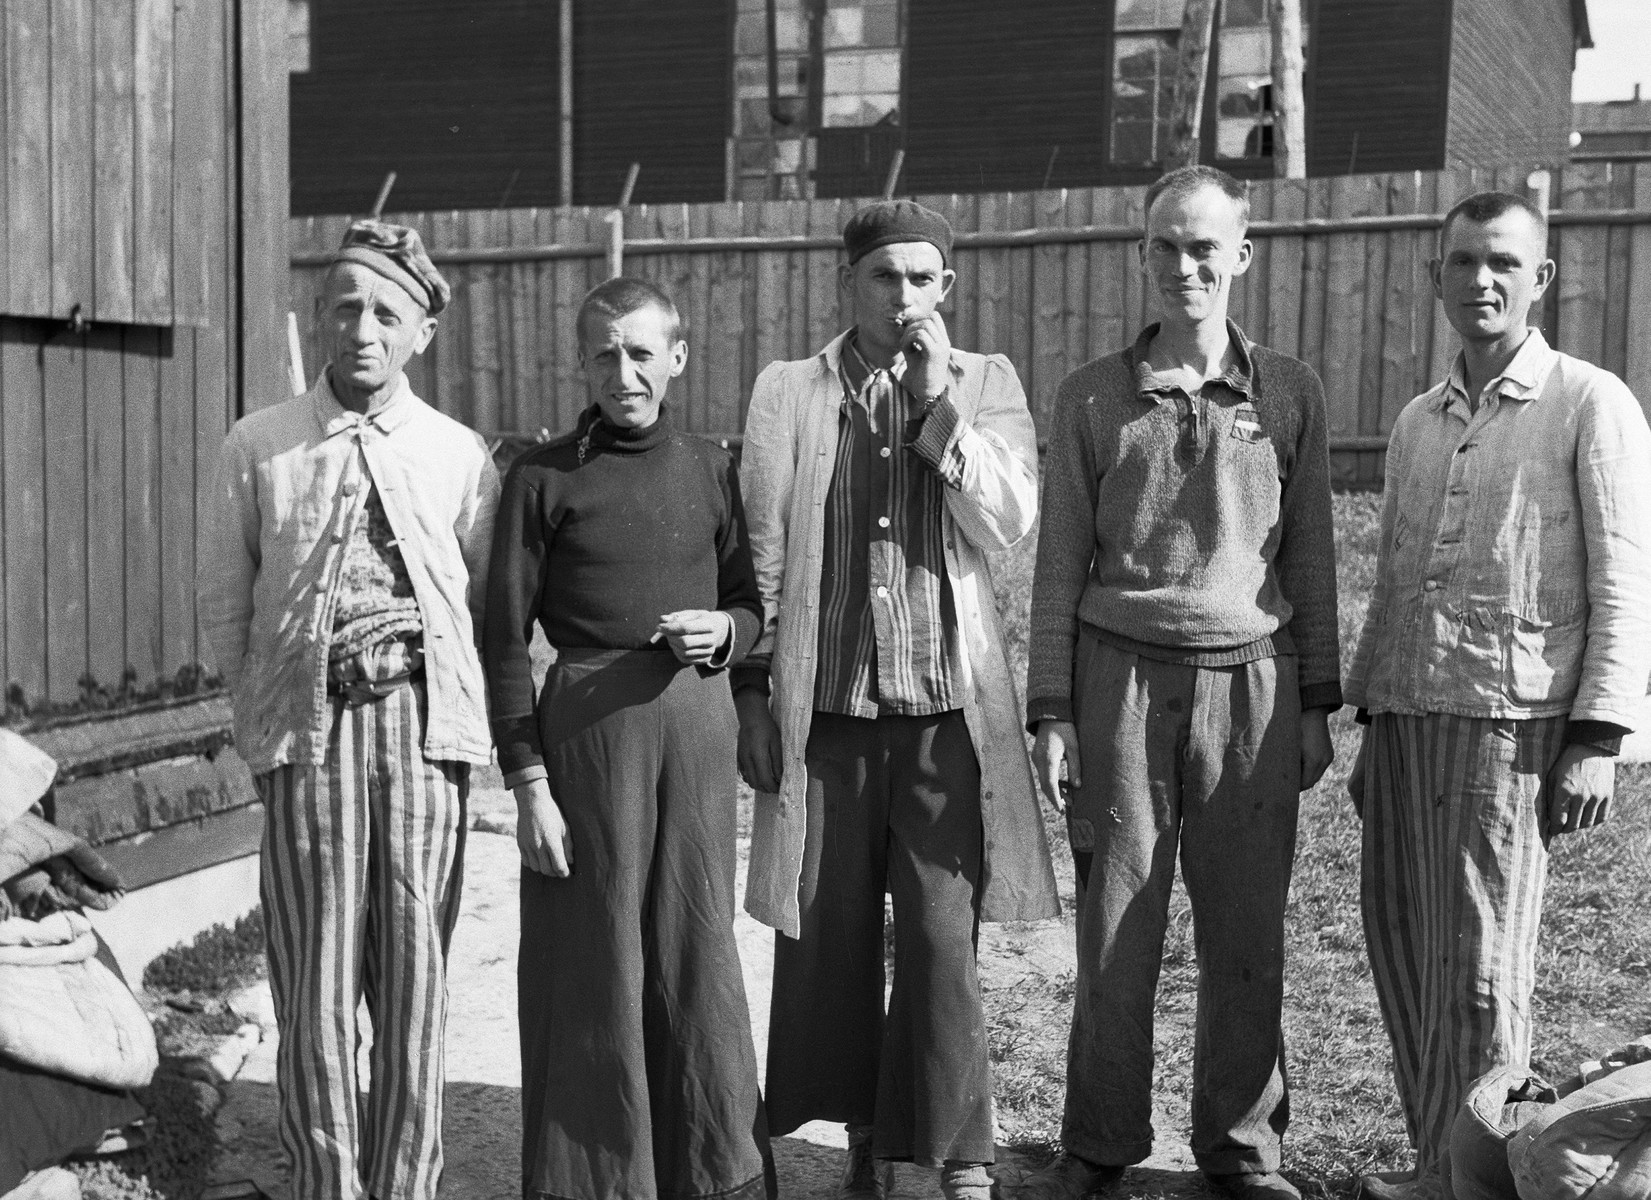 Survivors at Buchenwald pose for a photograph taken by a U.S. Army medical officer with the 45th Evacuation Hospital.    The 45th Evacuation Hospital arrived at Buchenwald after liberation of the camp and was tasked with providing a range of care to newly liberated inmates. Their duties were soon directed to the treatment and evacuation of inmates suffering from tuberculosis.  With the assistance of several prisoners who had been camp physicians, the 45th managed to prevent further spread of the disease and to vastly improve the quality of treatment that individuals received.